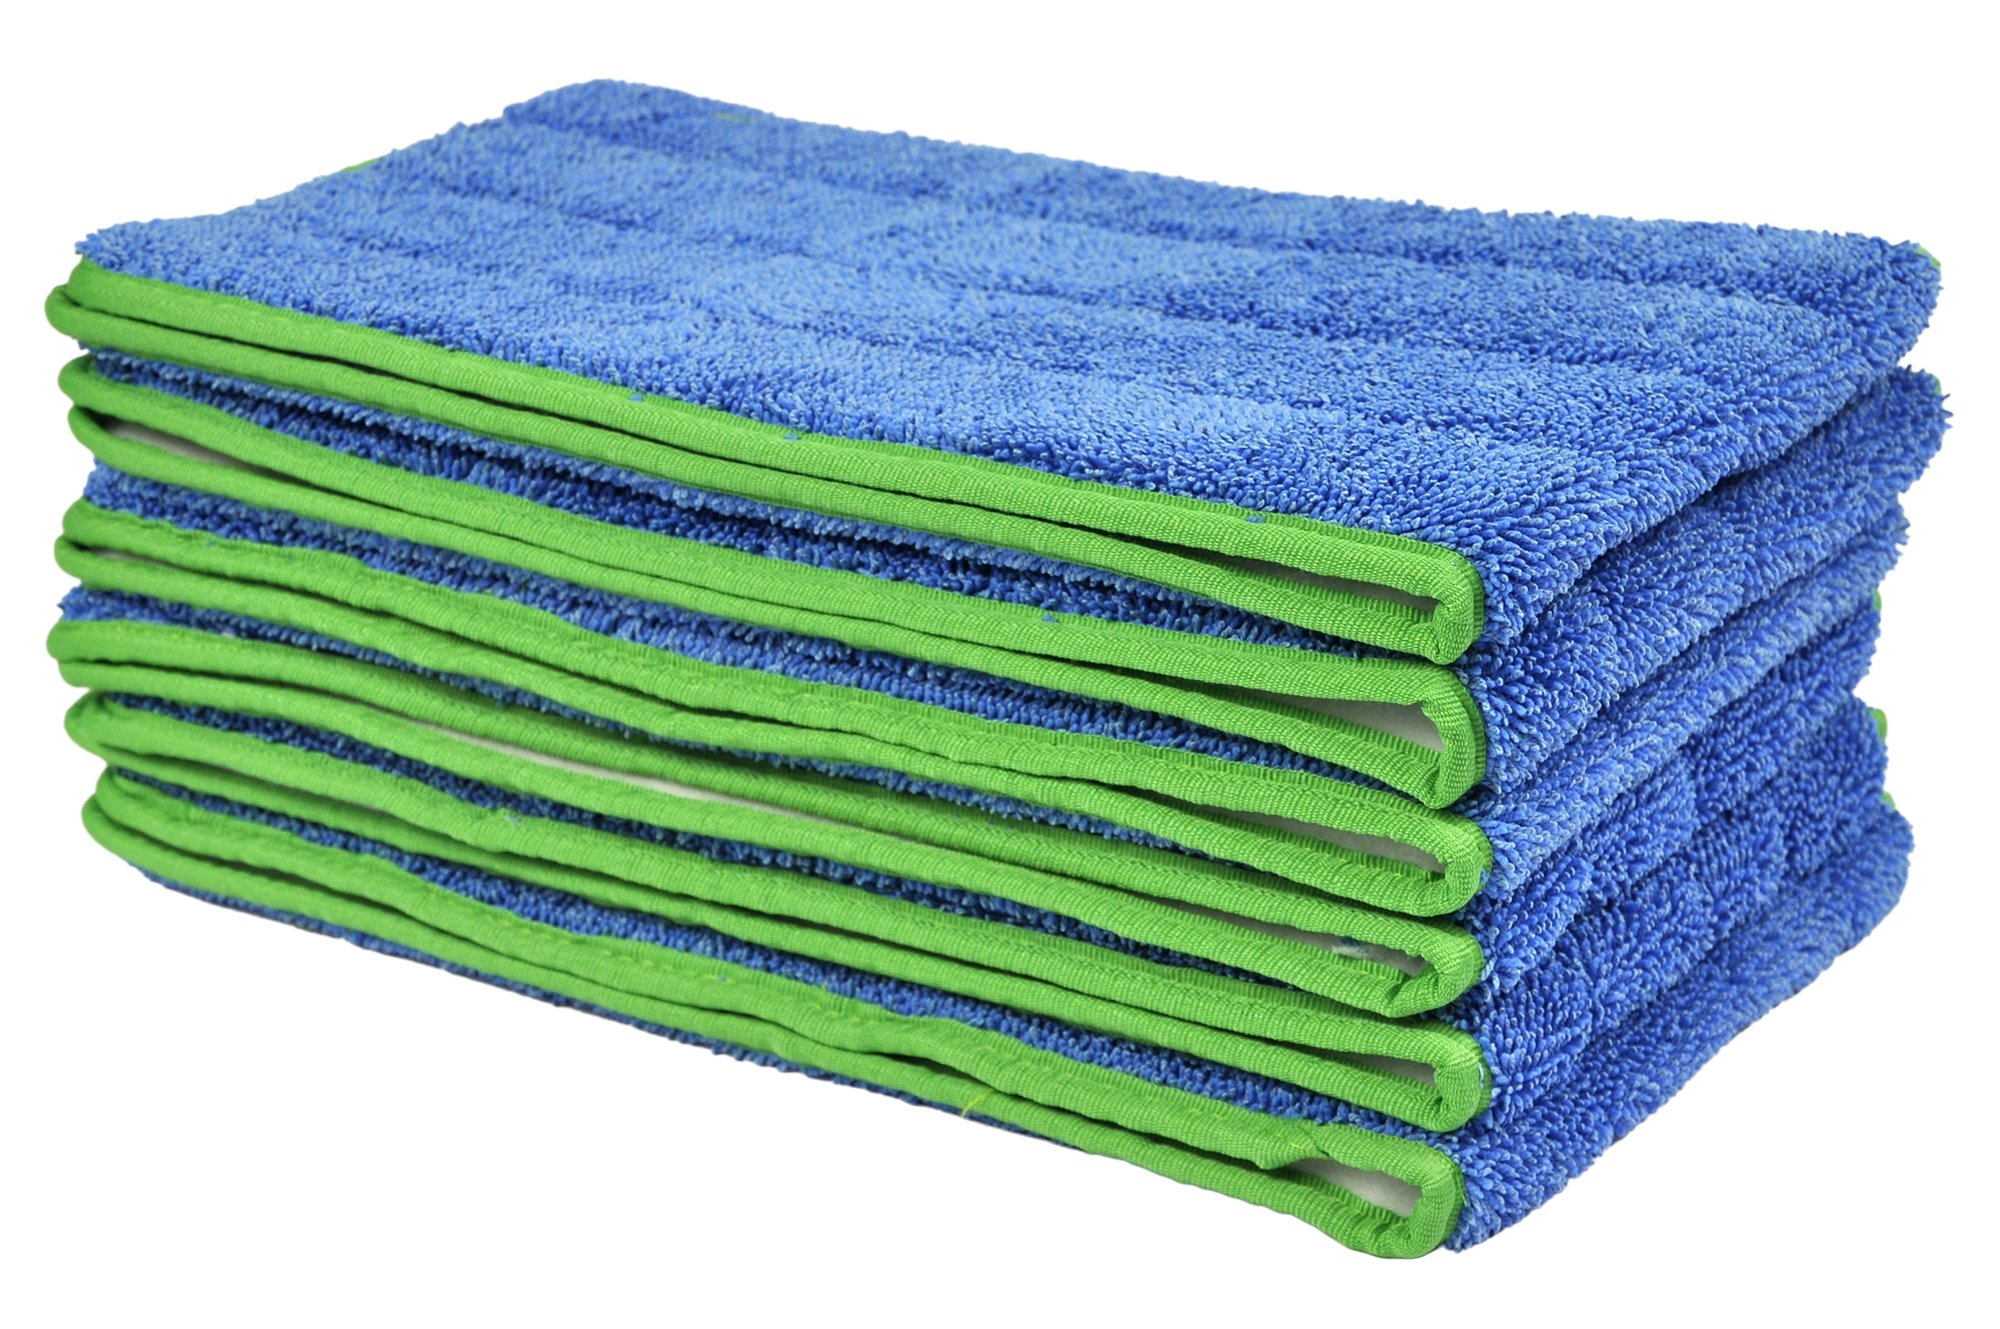 CleanAide All Purpose Mega Microfiber Mop Pad 24 Inches Green 6 Pack